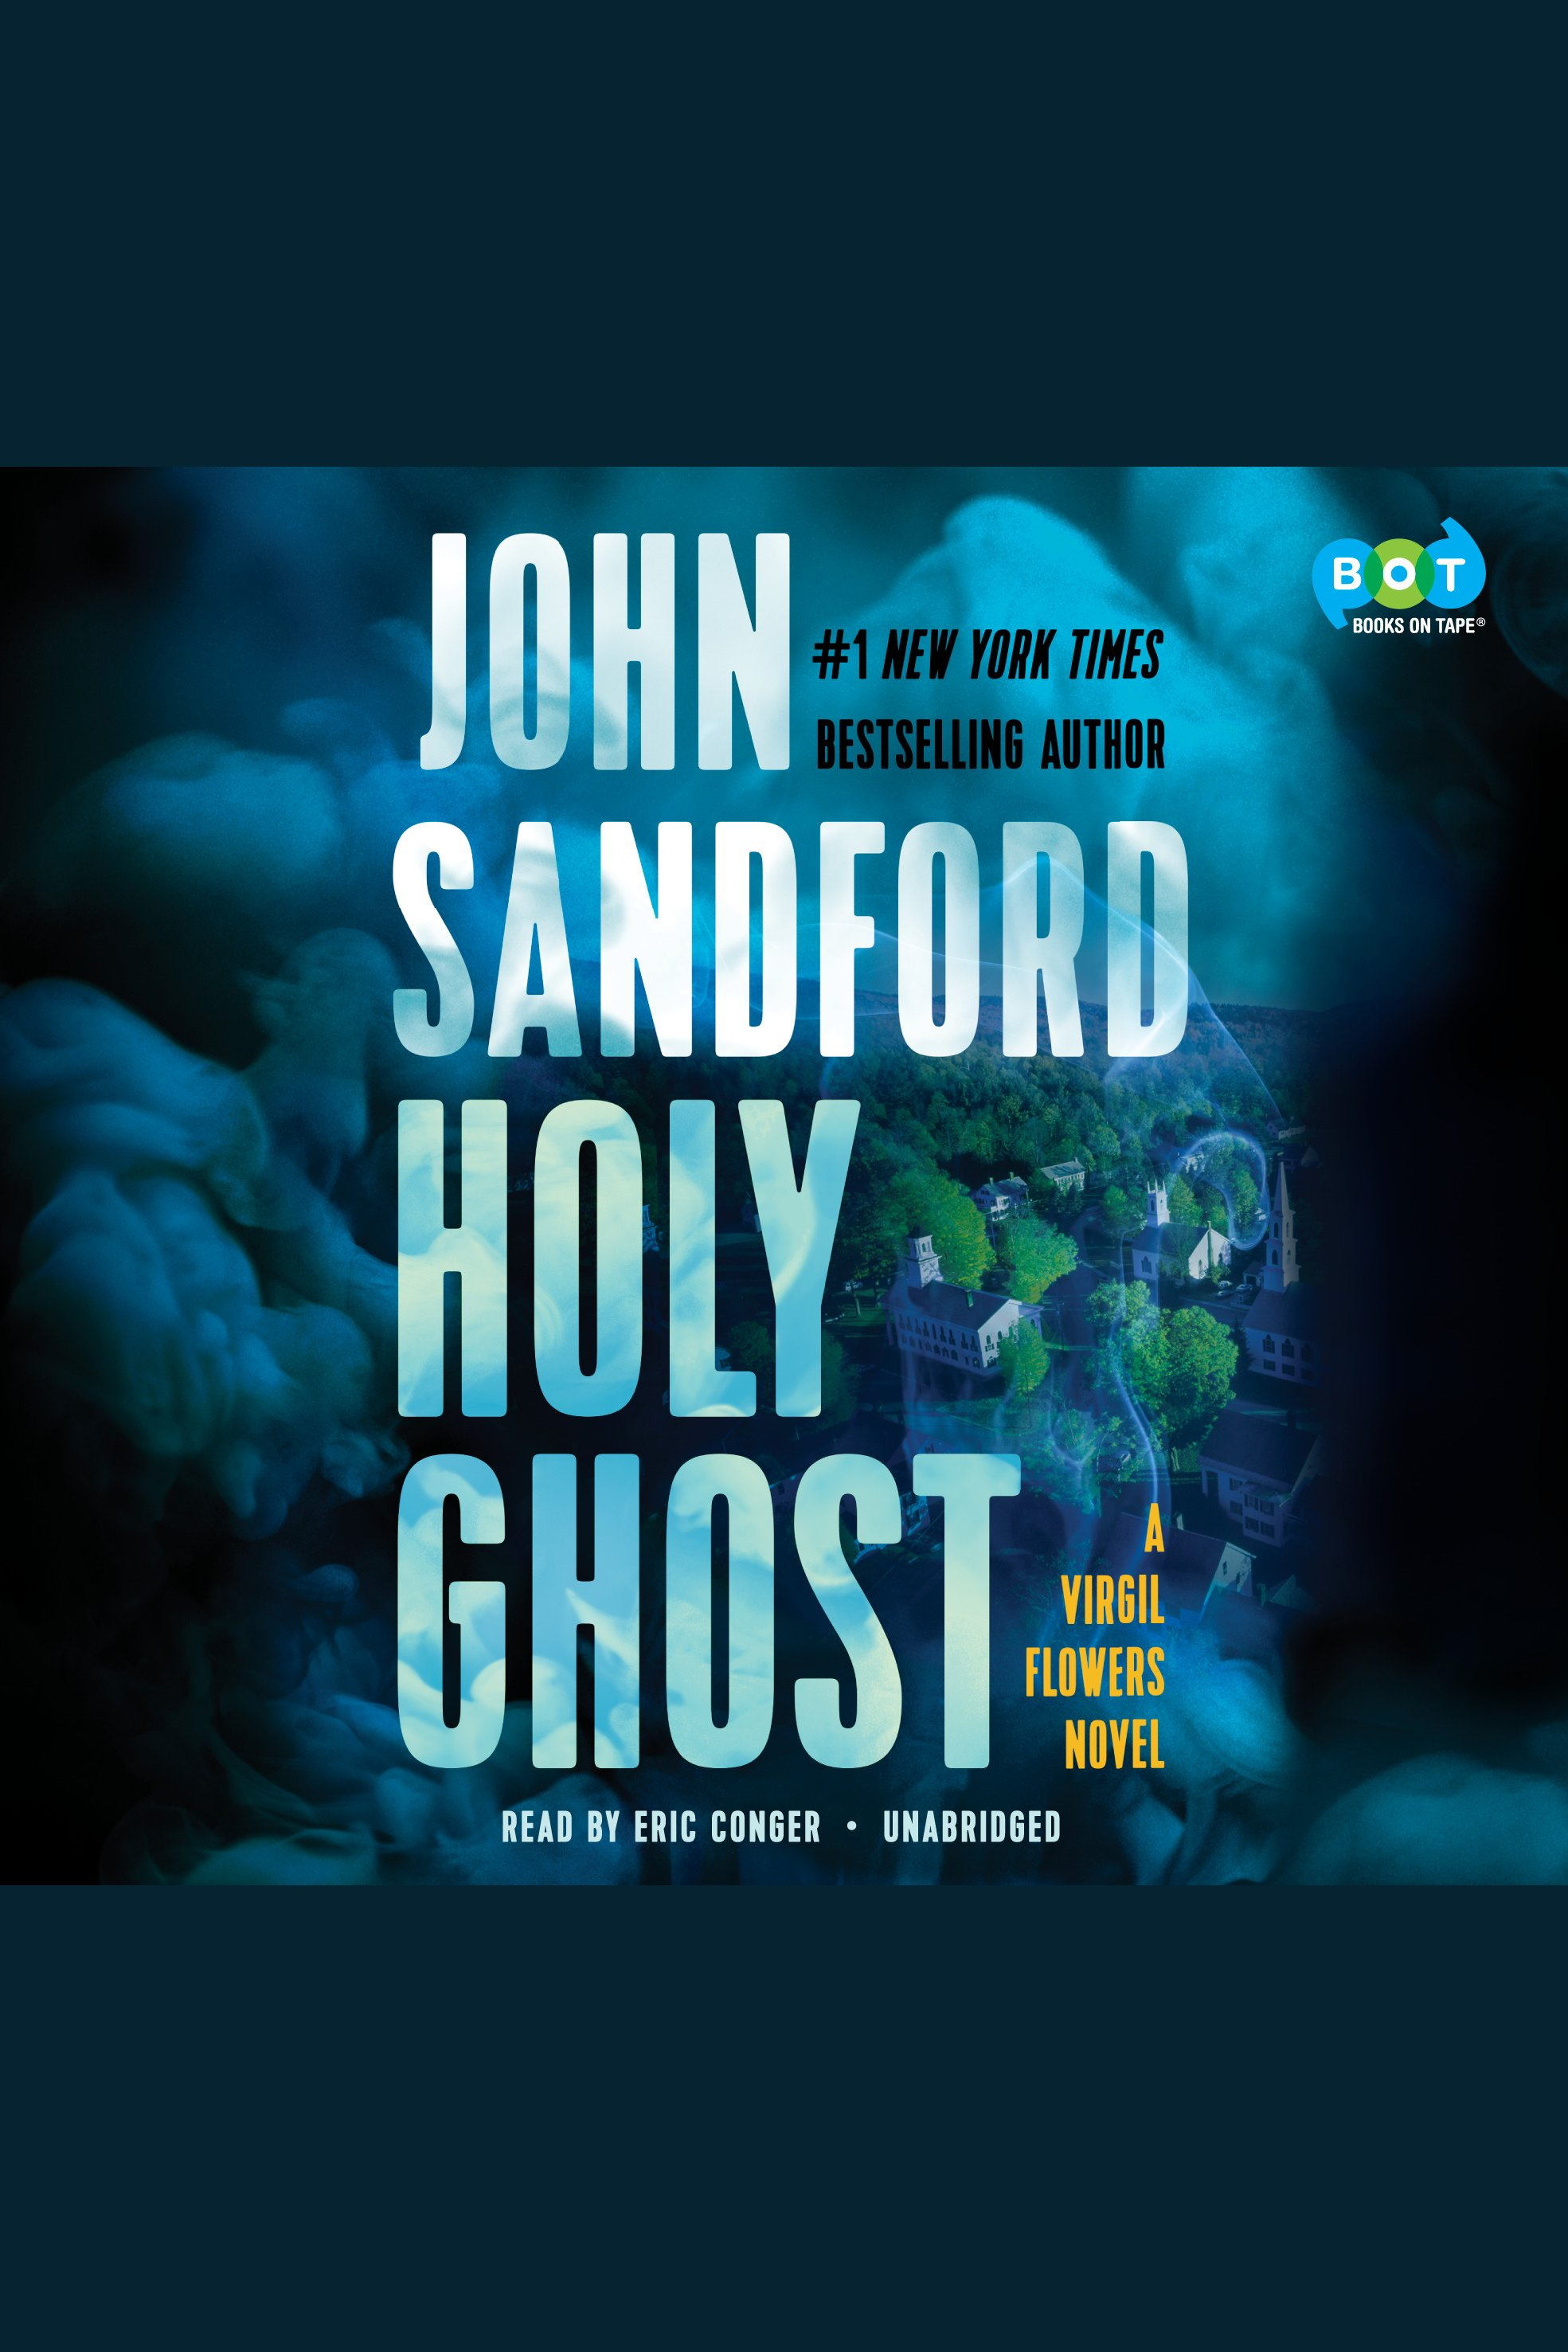 Holy ghost cover image